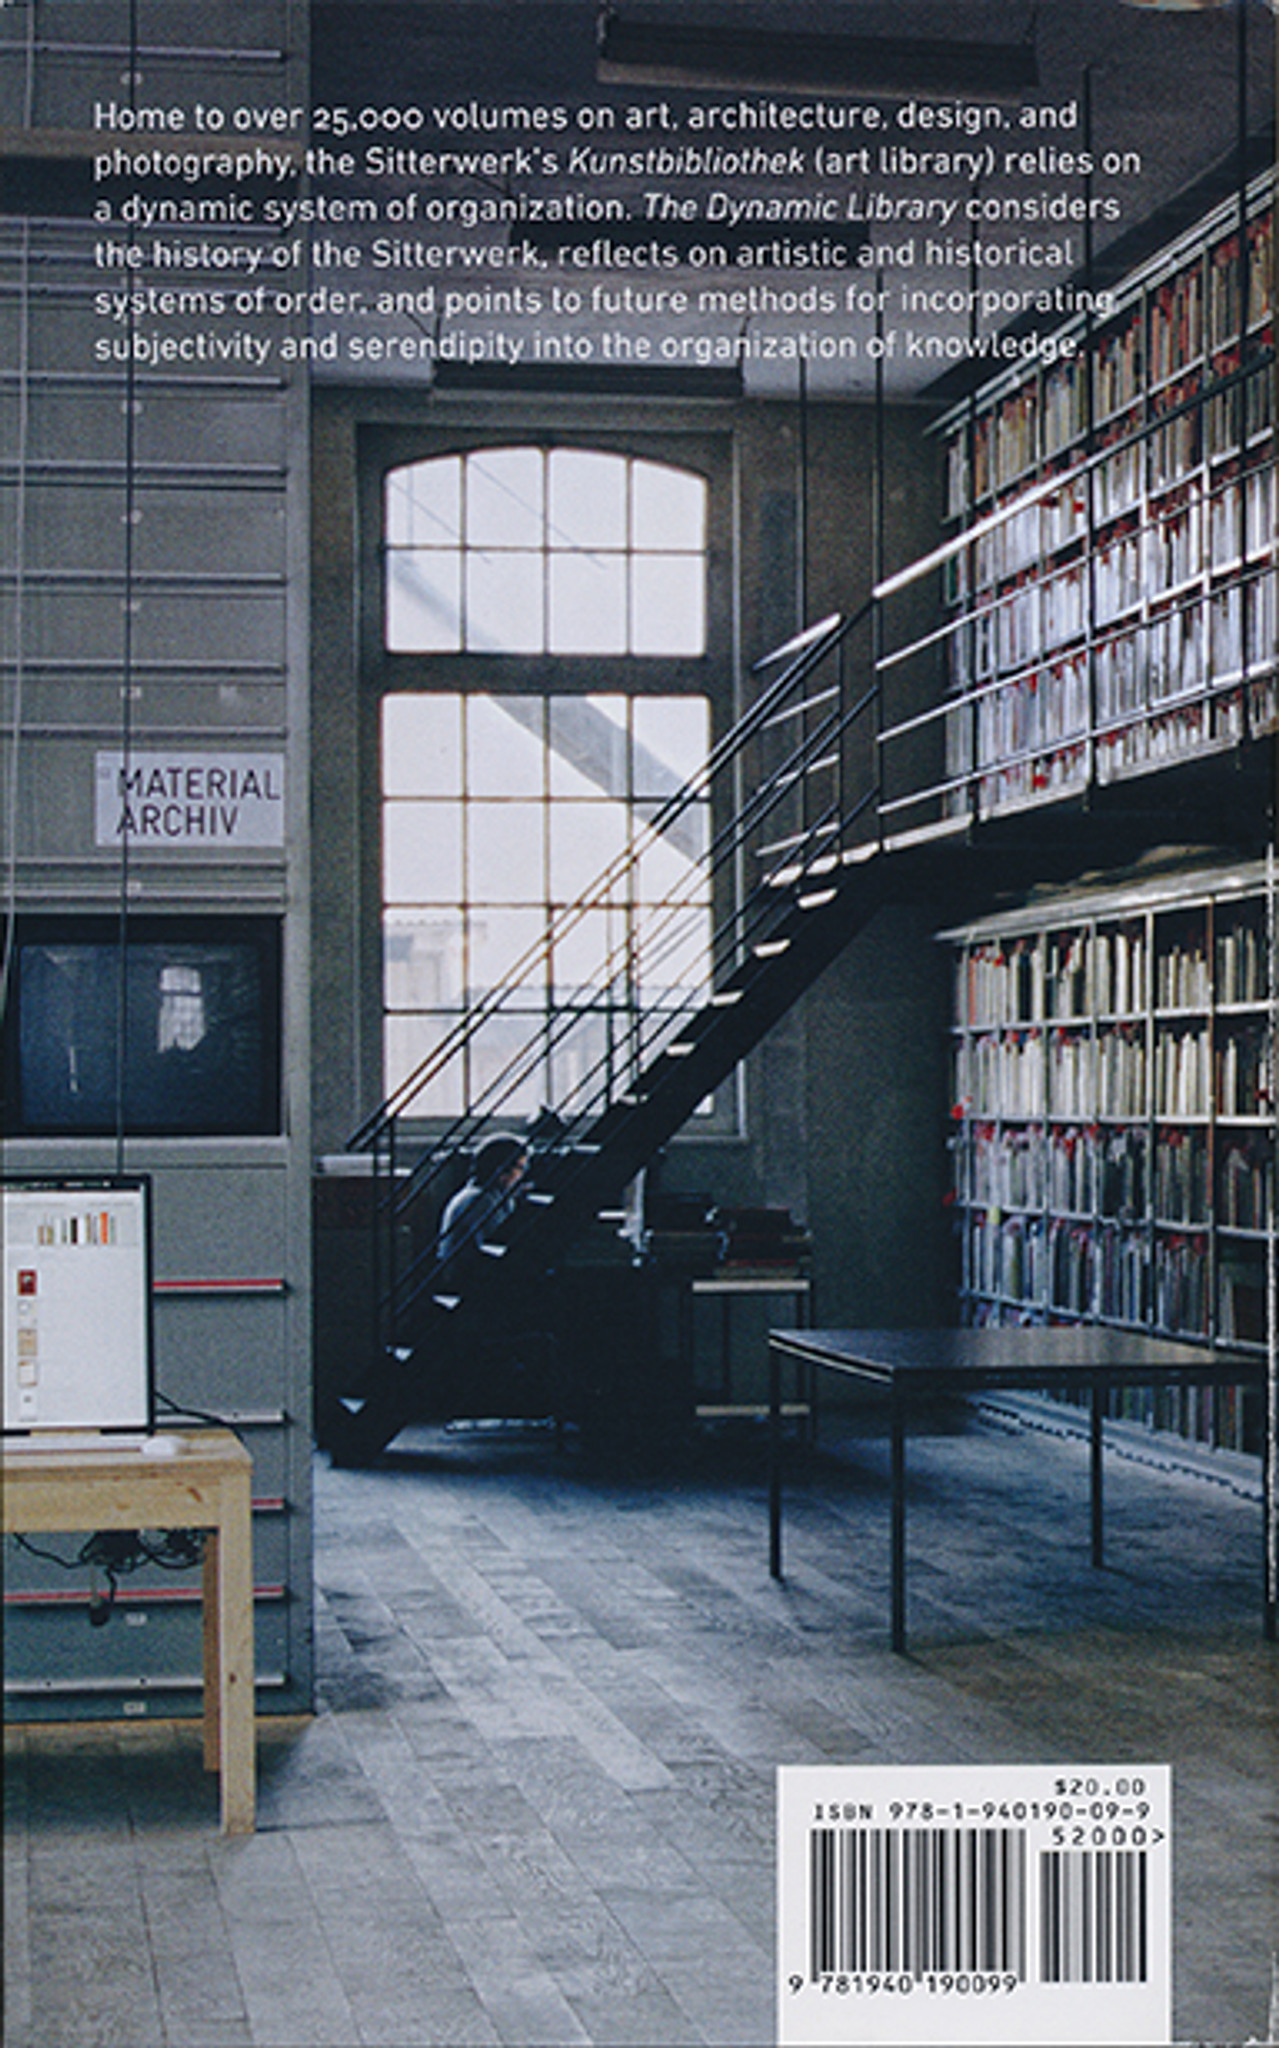 The Dynamic Library